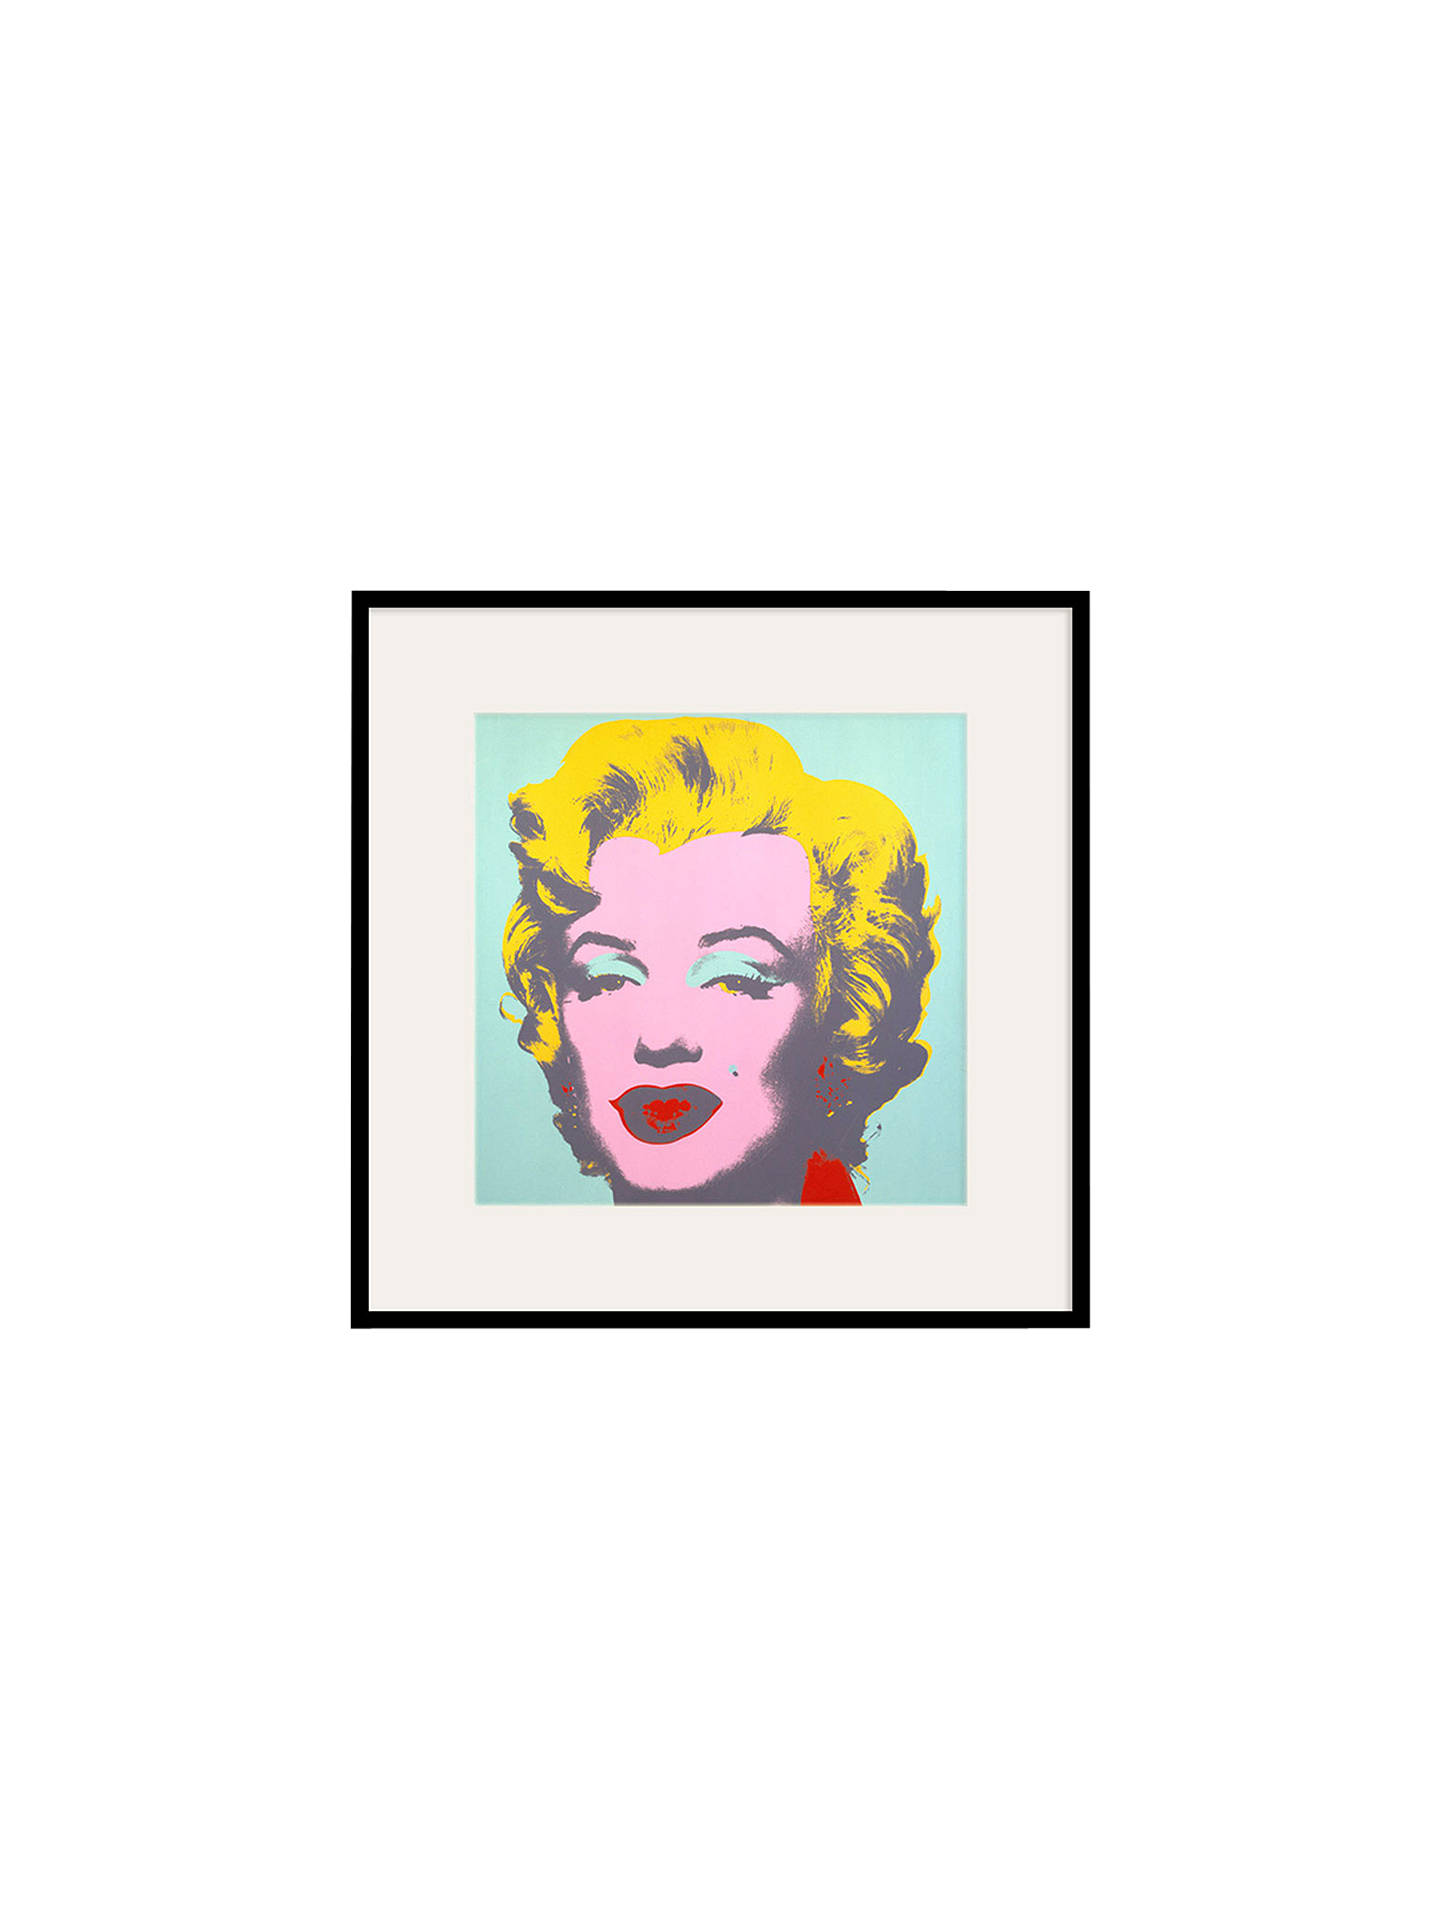 BuyAndy Warhol - From Marilyn Green 1967, 60 x 60cm Online at johnlewis.com